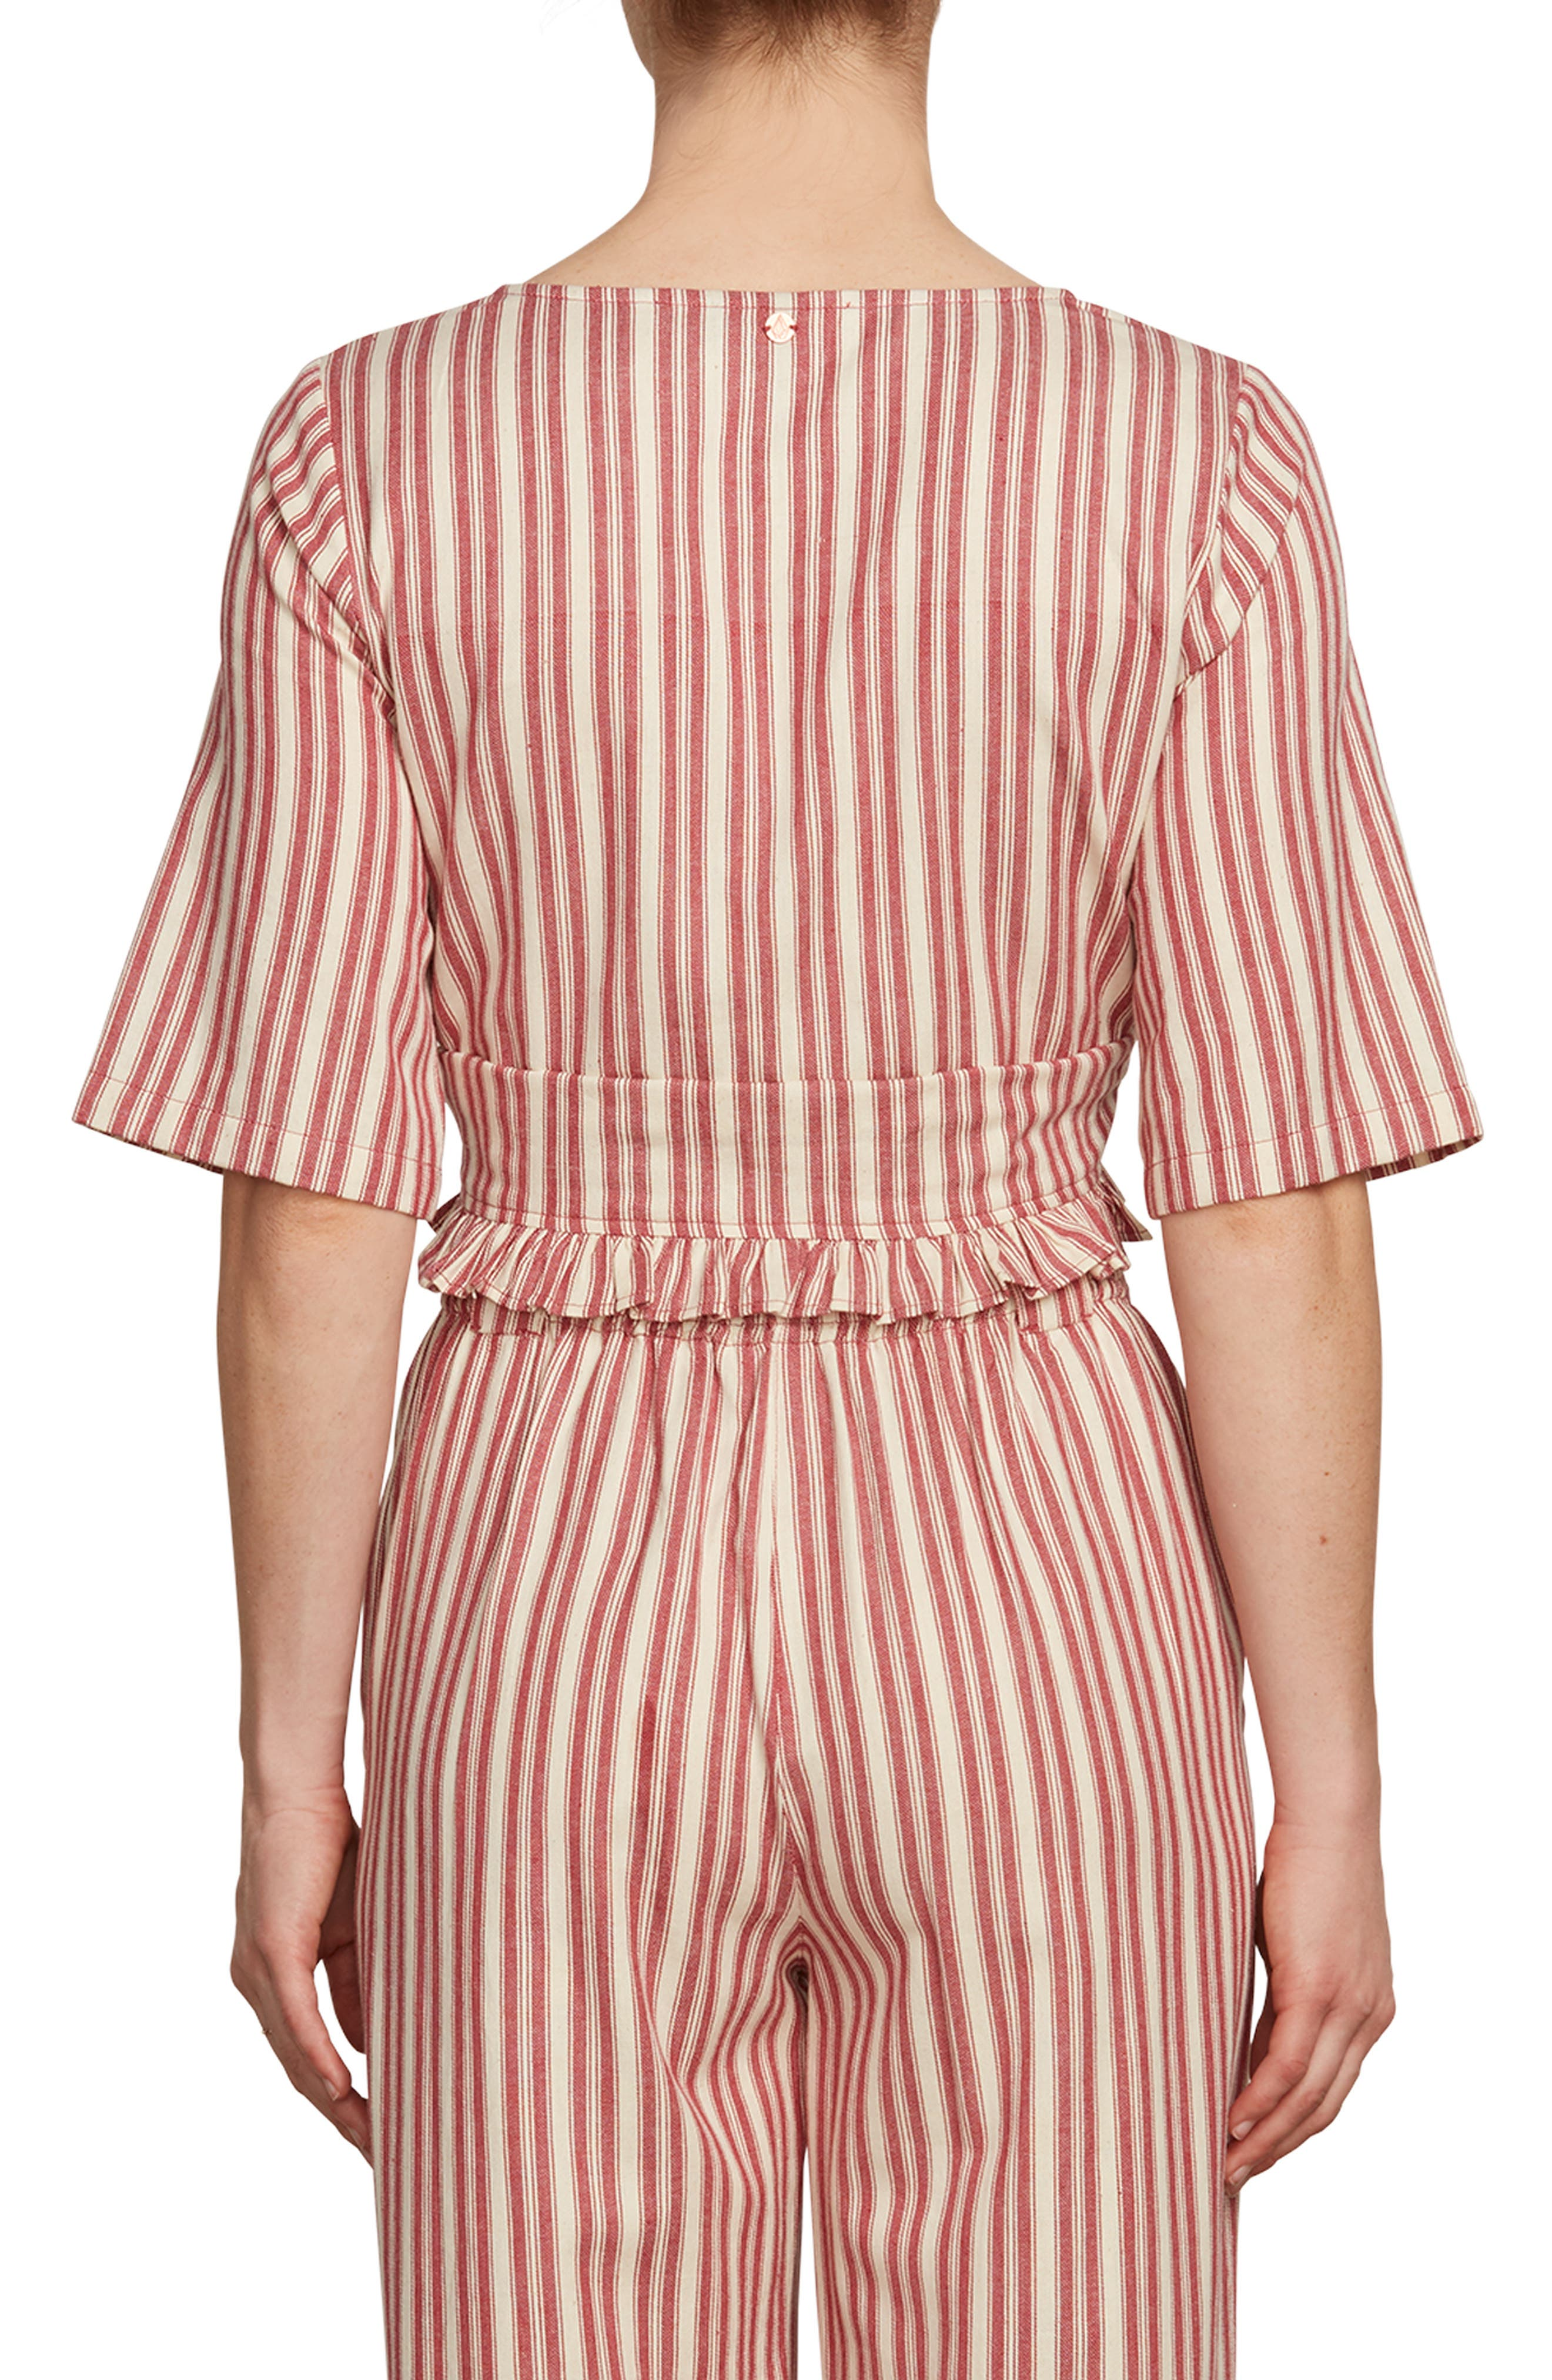 Pull Here Stripe Crop Top,                             Alternate thumbnail 2, color,                             600